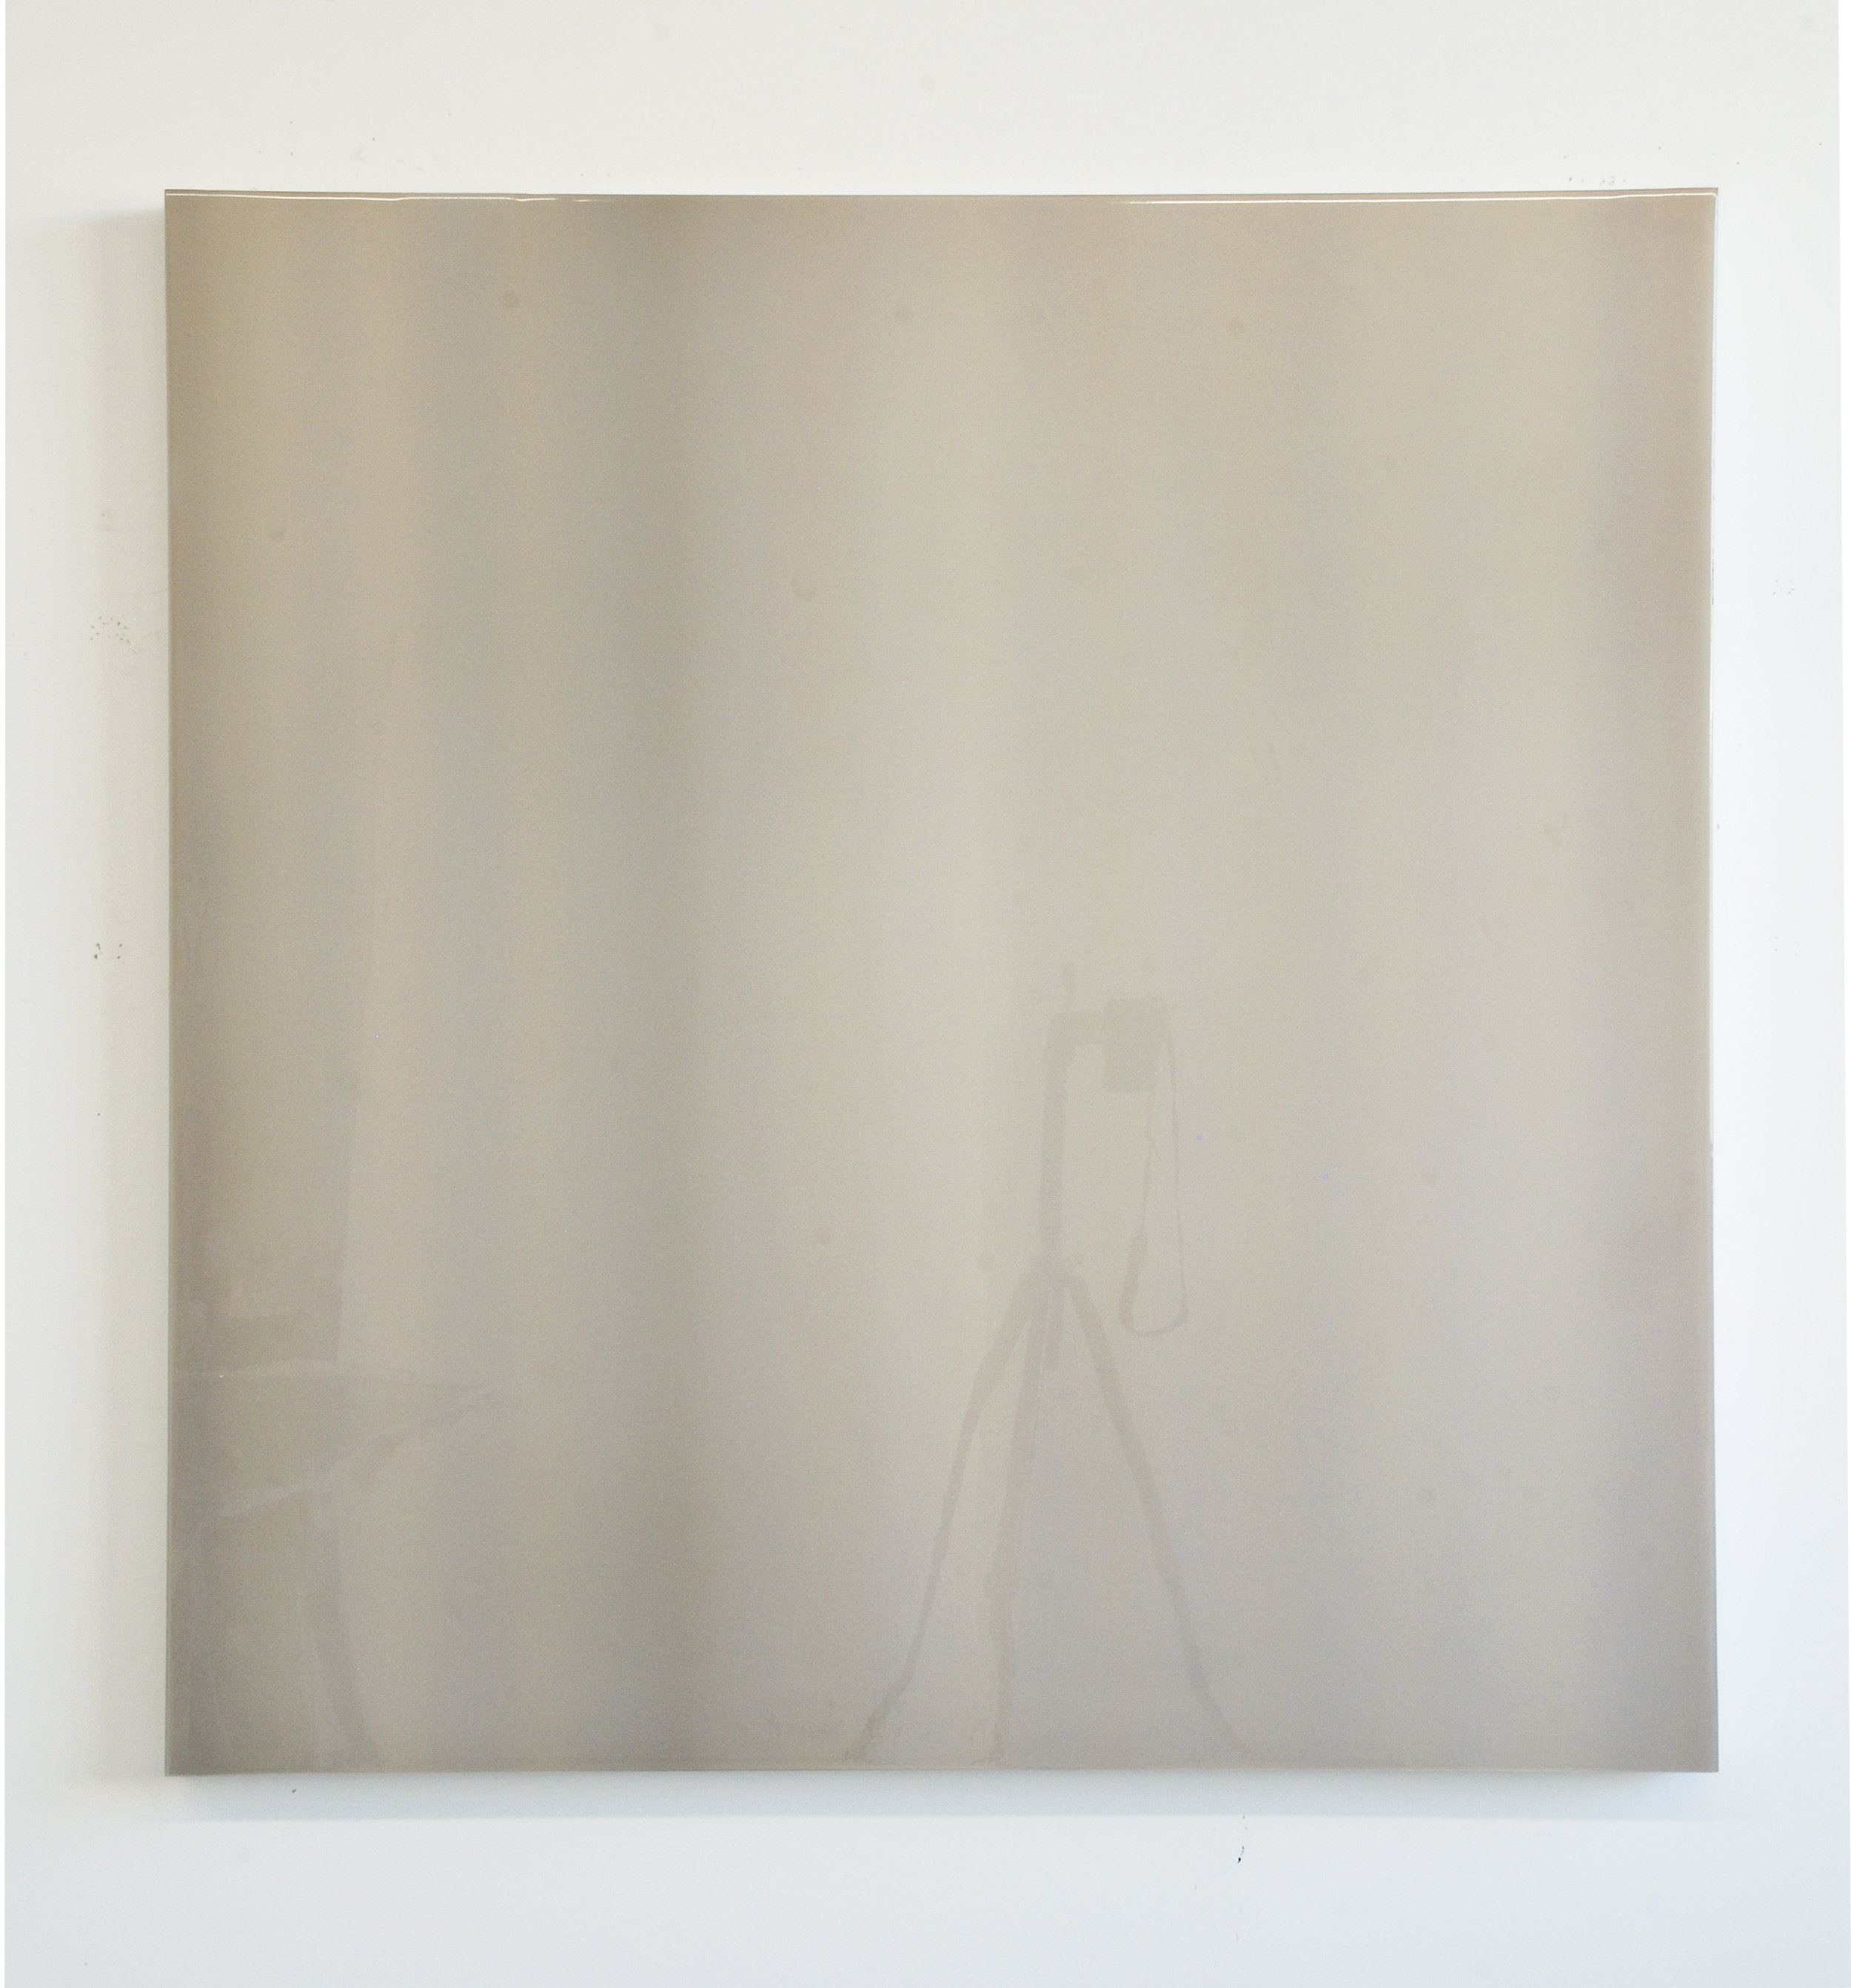 52 by 52 (striated), 2011